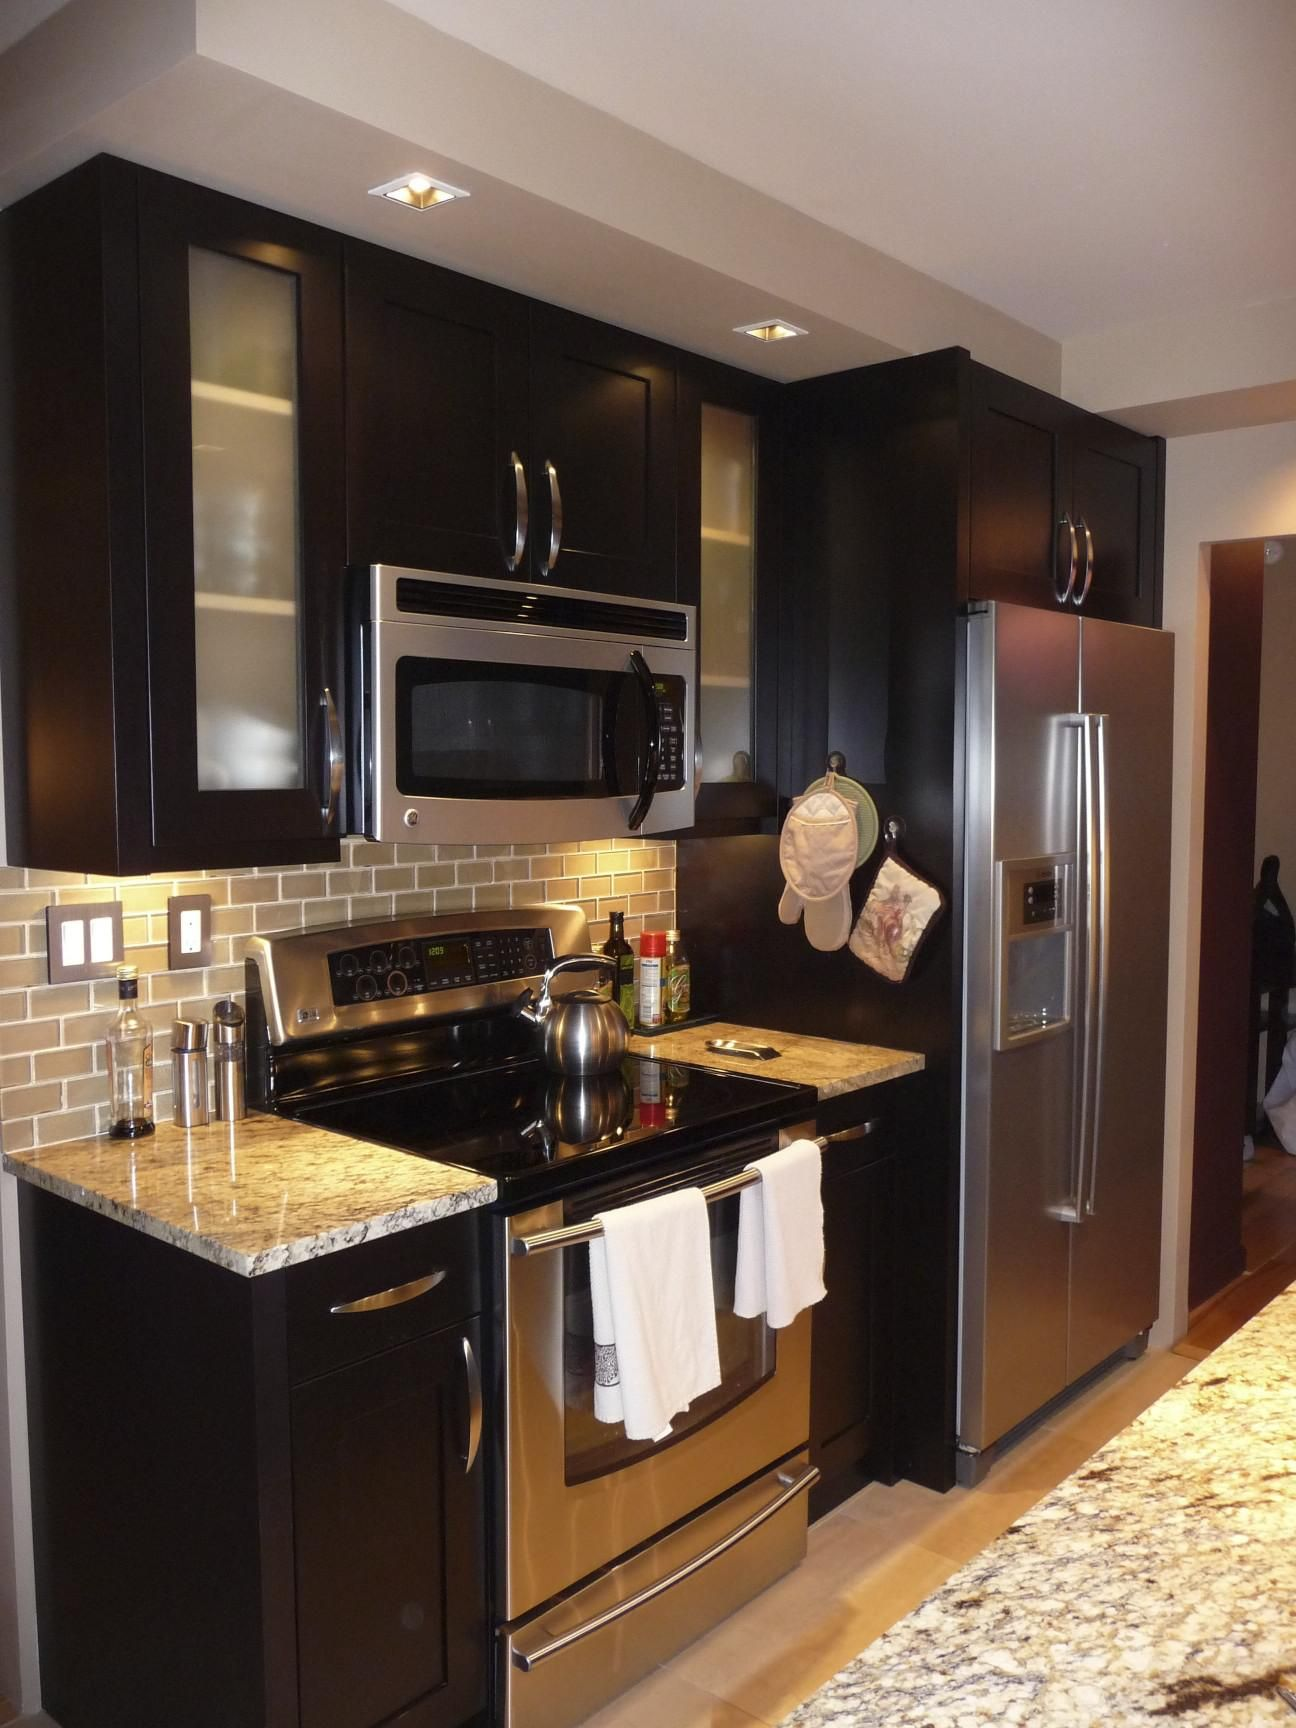 Small Kitchen Countertop Espresso Cabinets With Stainless Steel Appliances And Backsplash